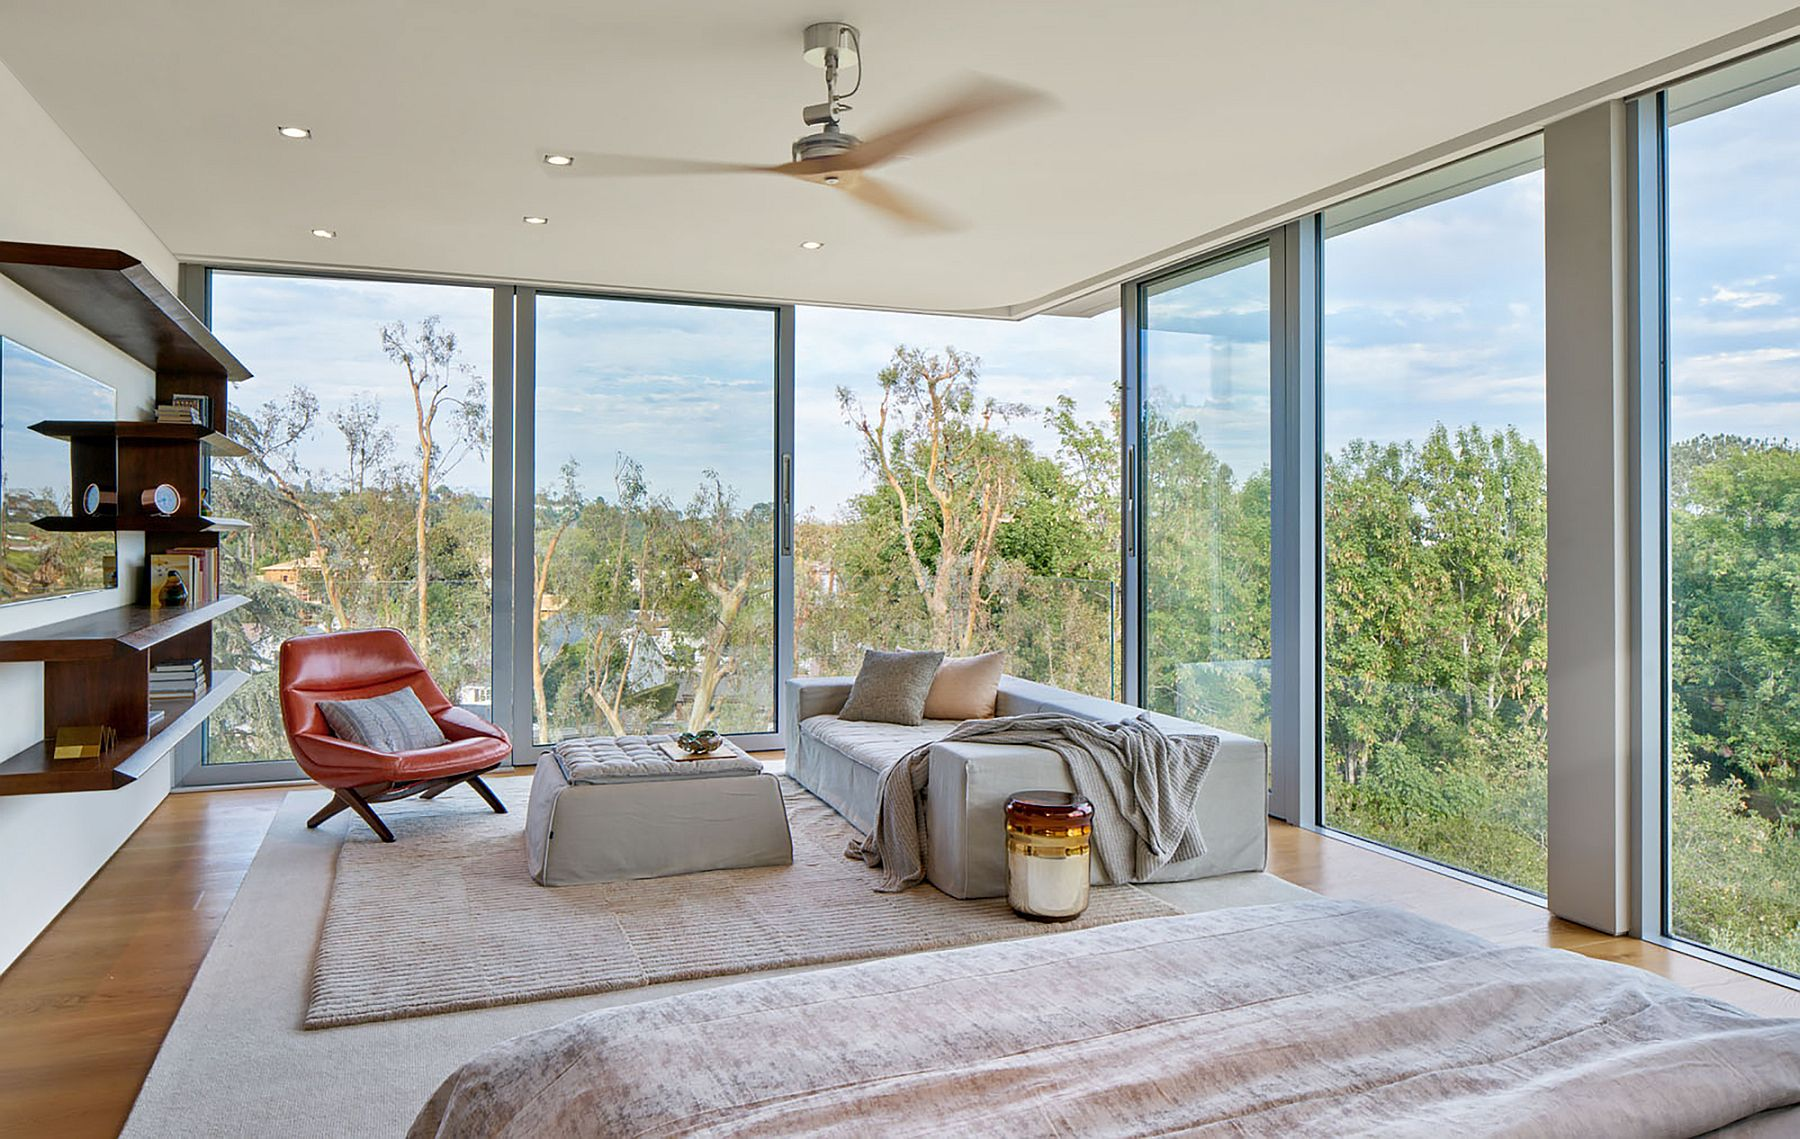 Relaxing room in neutral hues with wonderful valley views